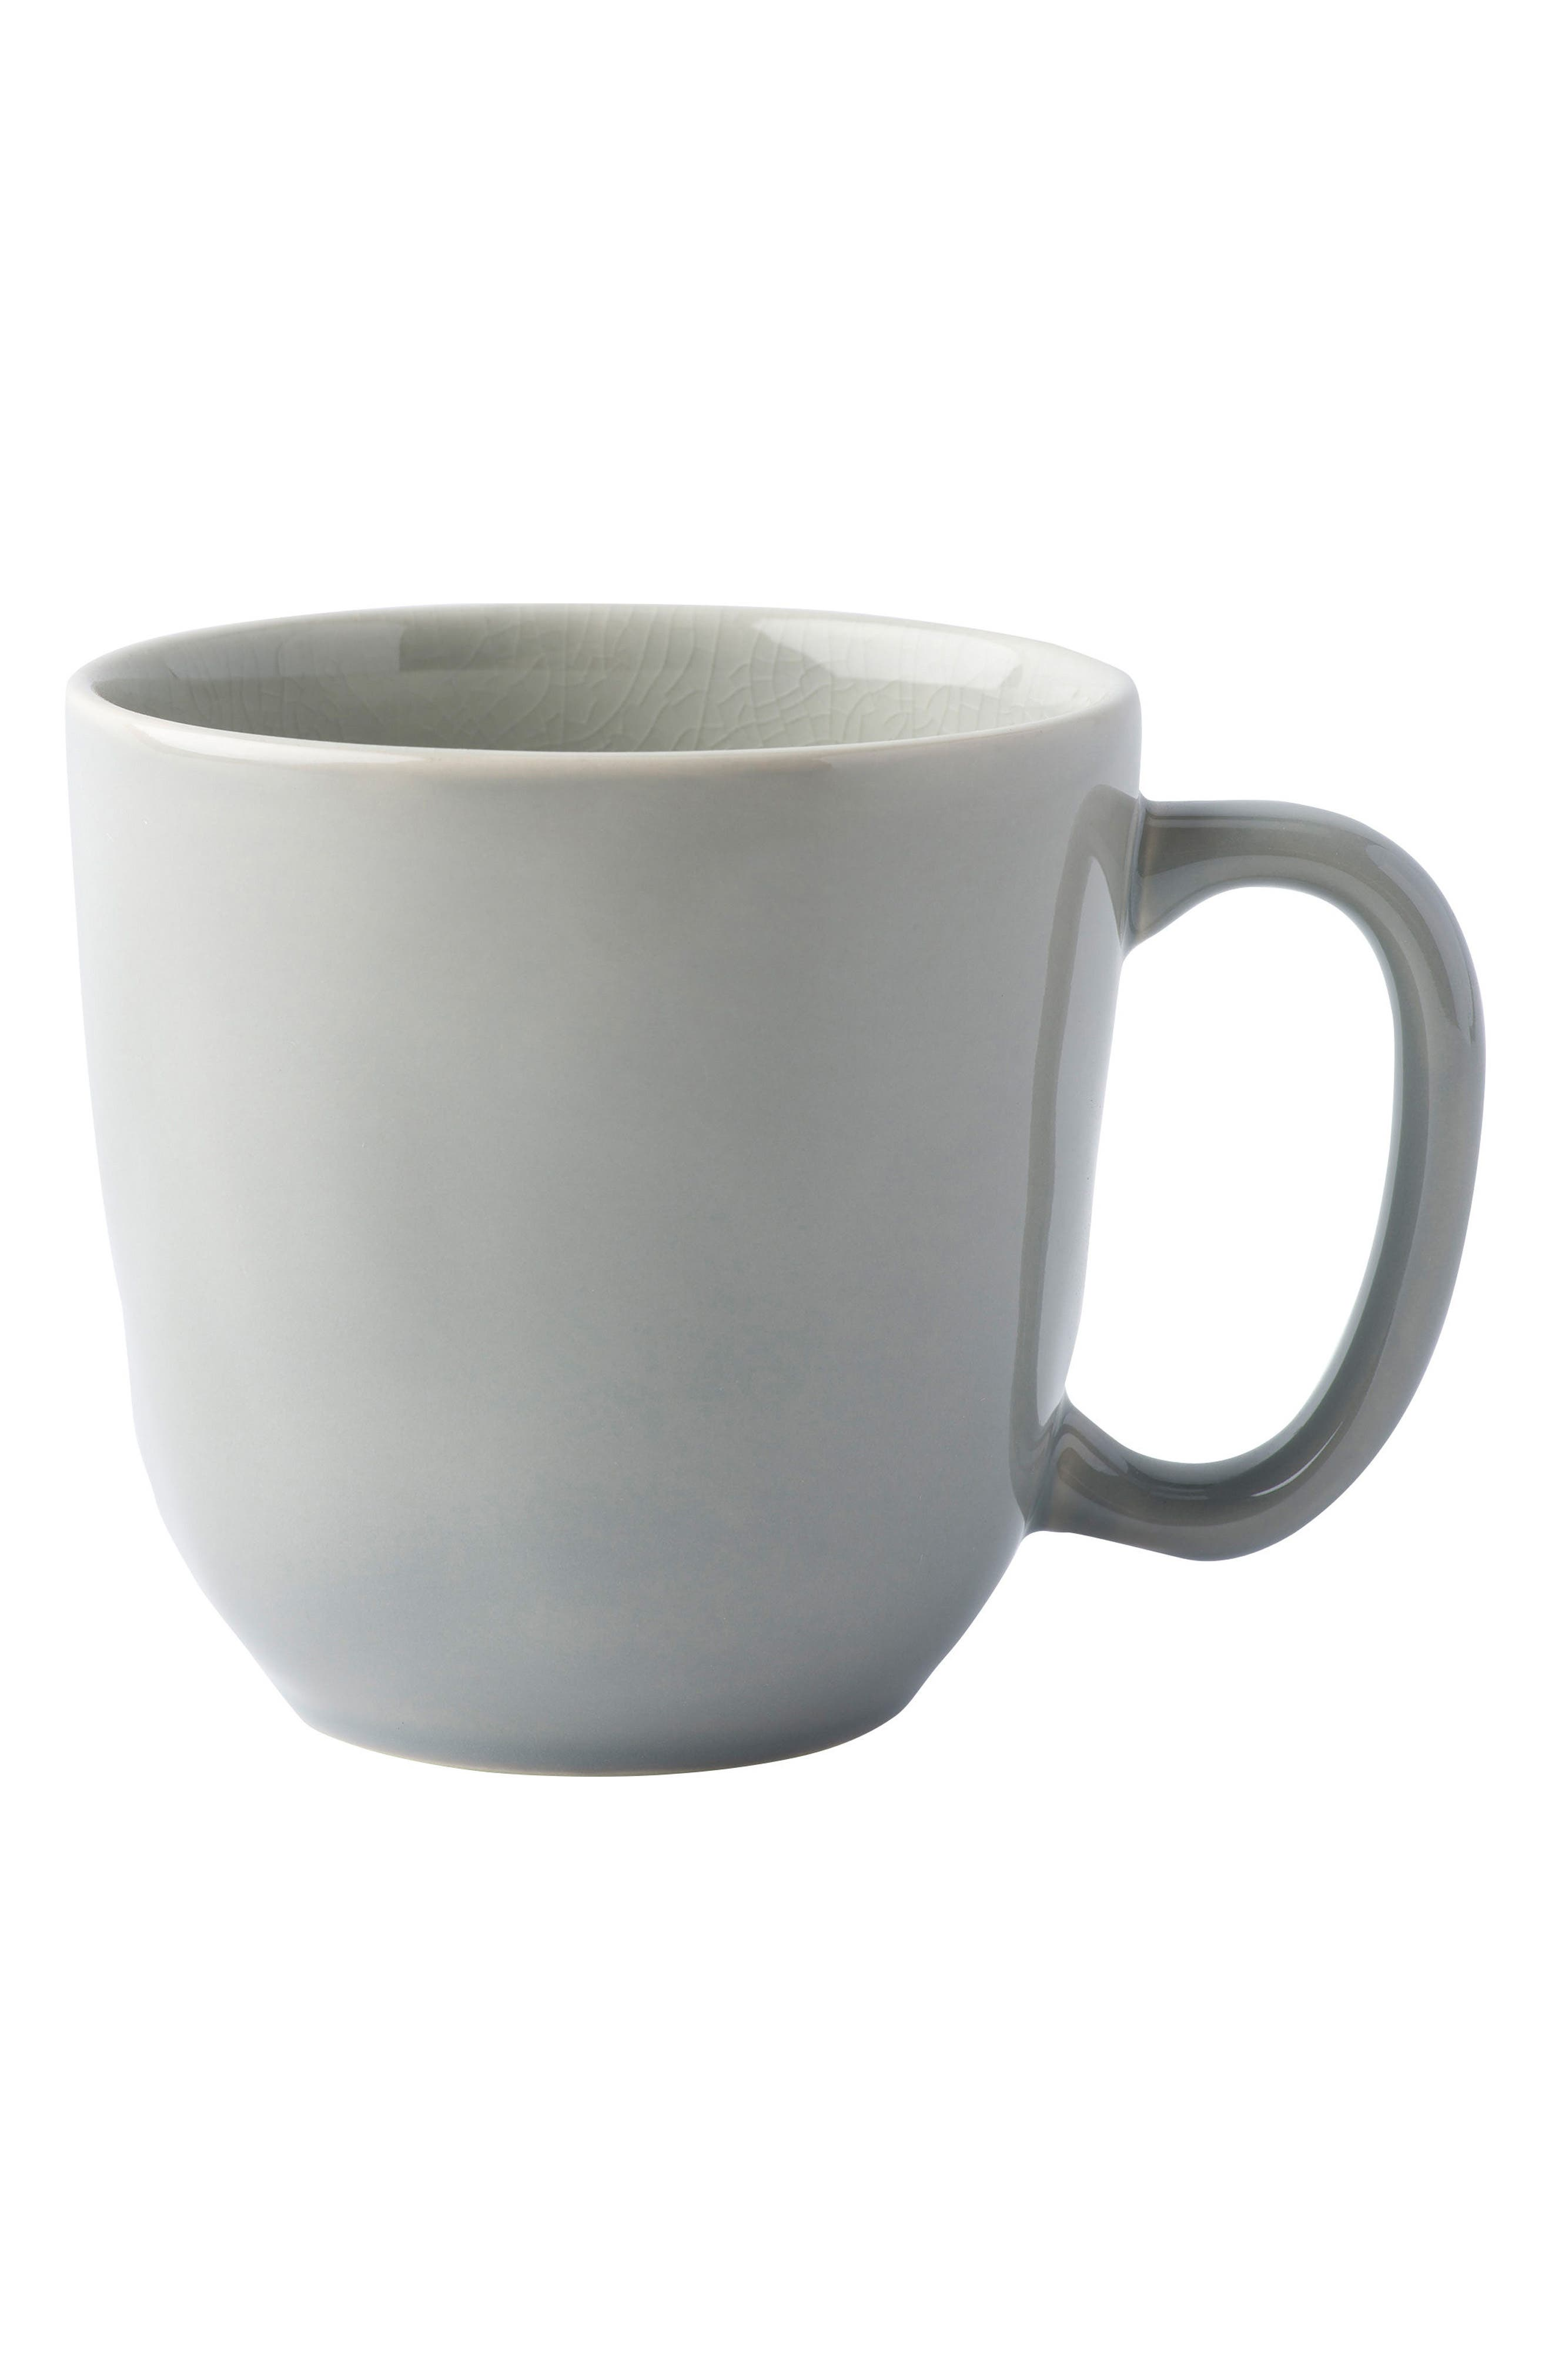 Puro Coffee Cup,                             Main thumbnail 1, color,                             Mist Grey Crackle